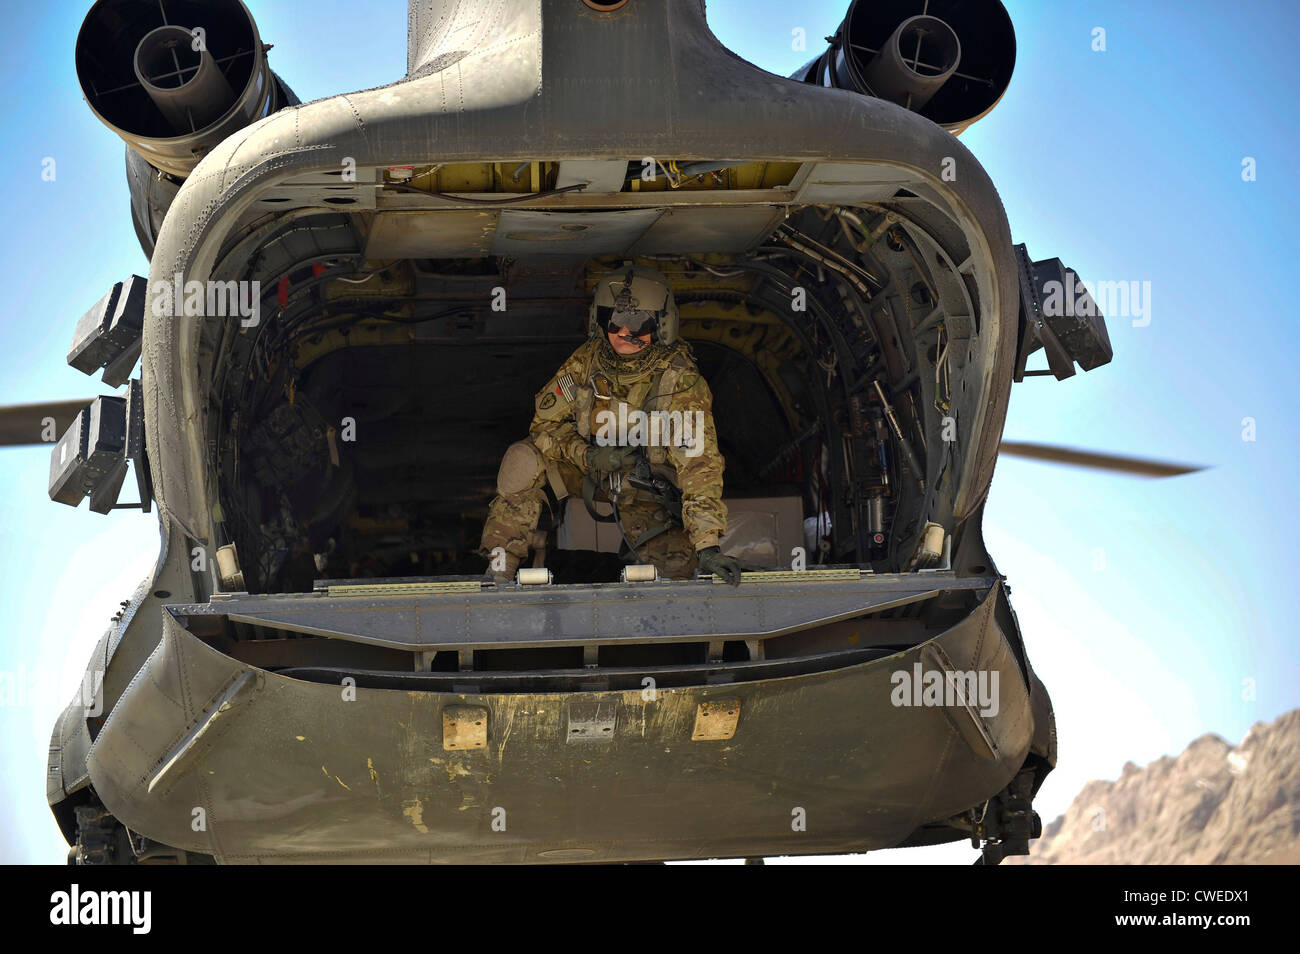 A crew member aboard a CH-47 Chinook helicopter relays information to the pilot as the aircraft approaches a remote - Stock Image